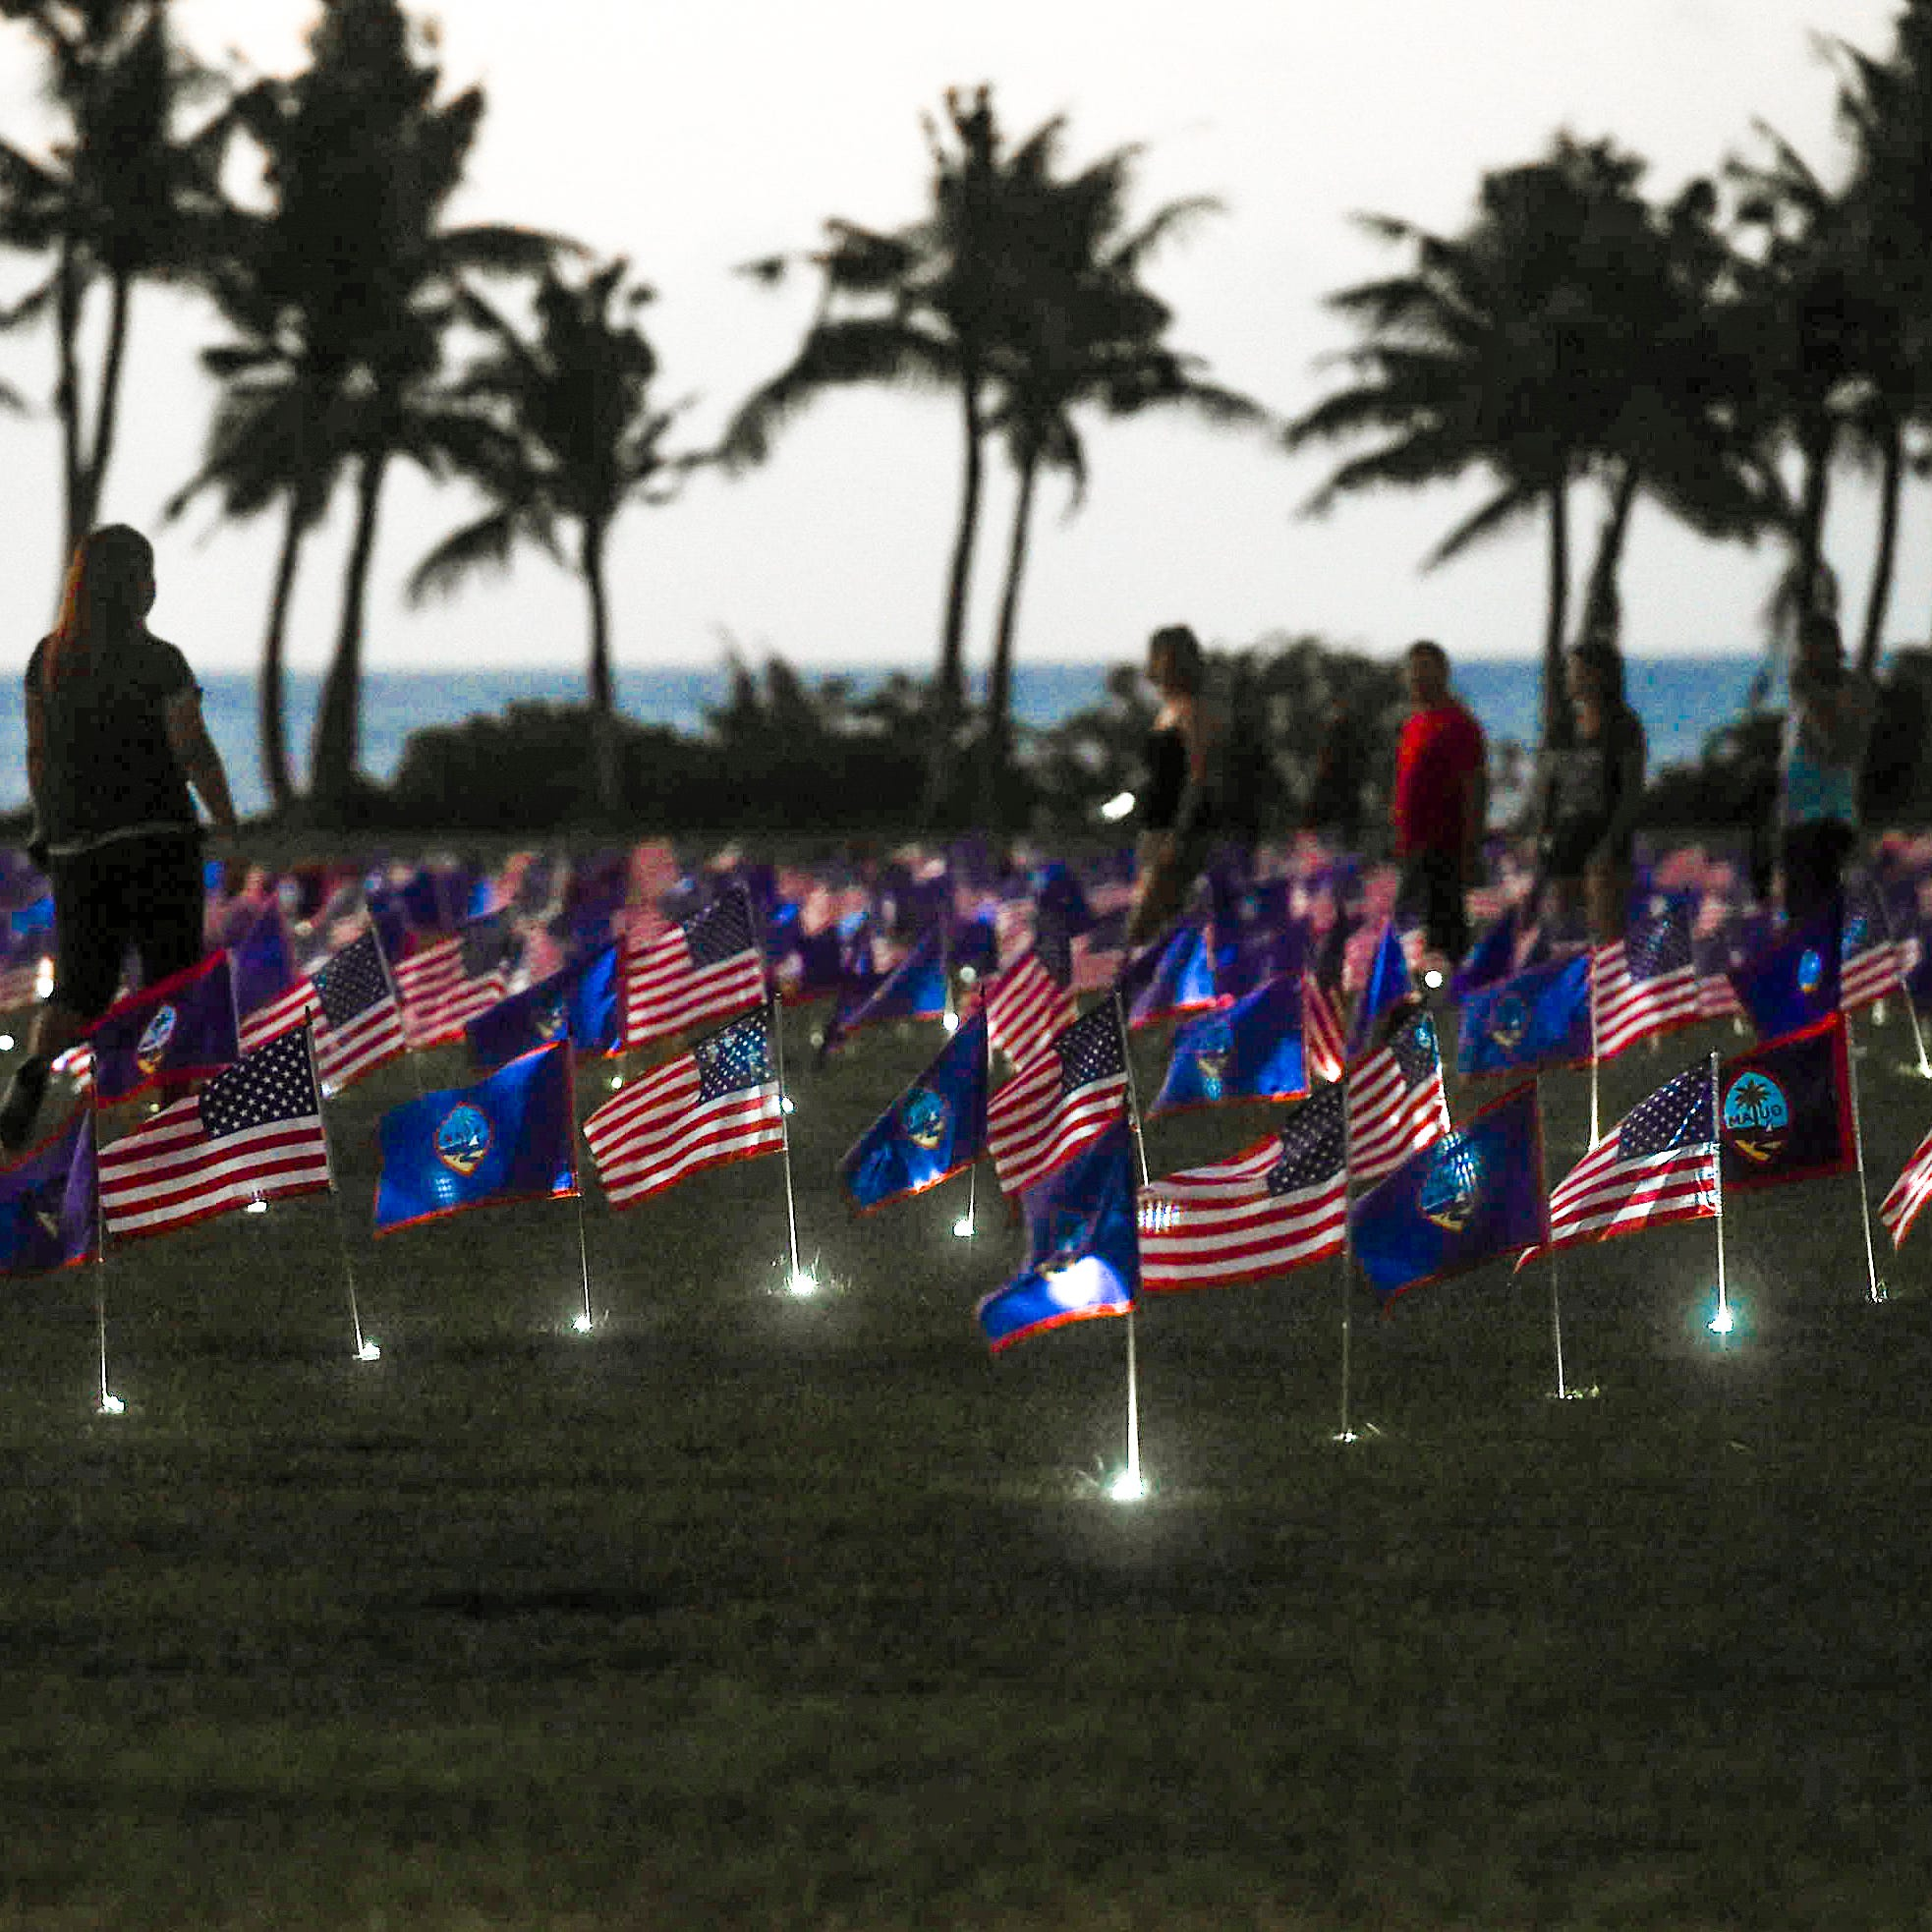 Volunteers sought for annual Memorial Day flag display at Asan Beach